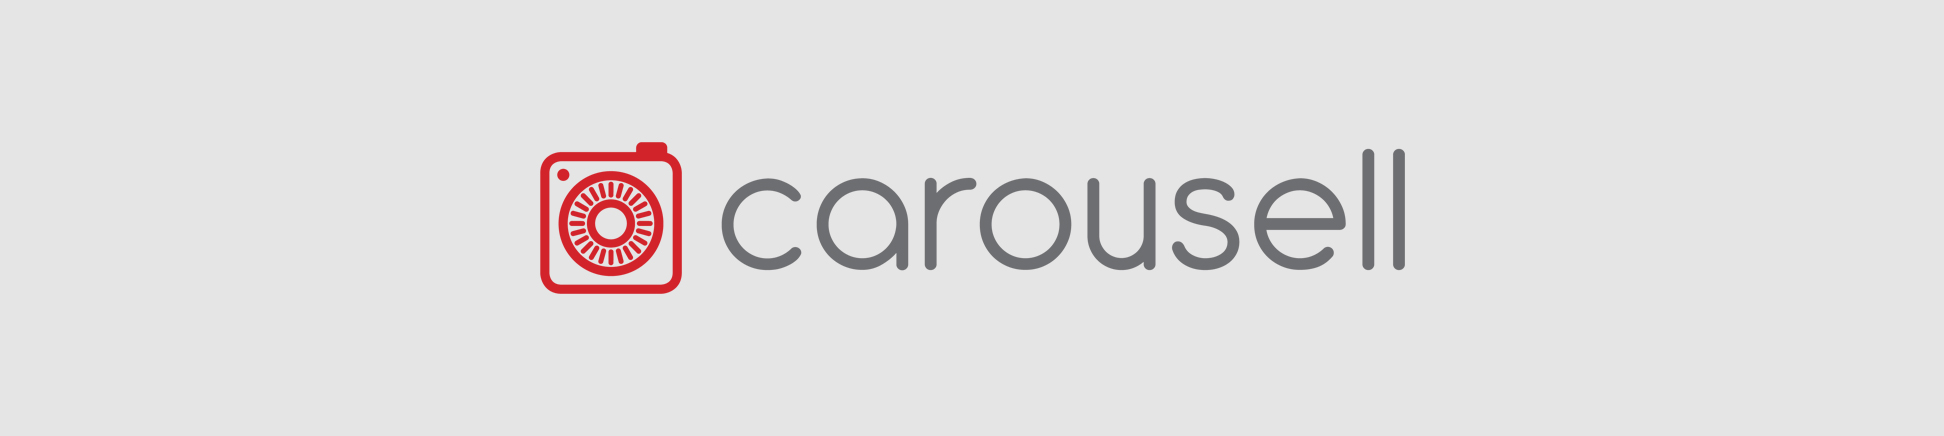 Success story - Carousell - integrated brand campaign